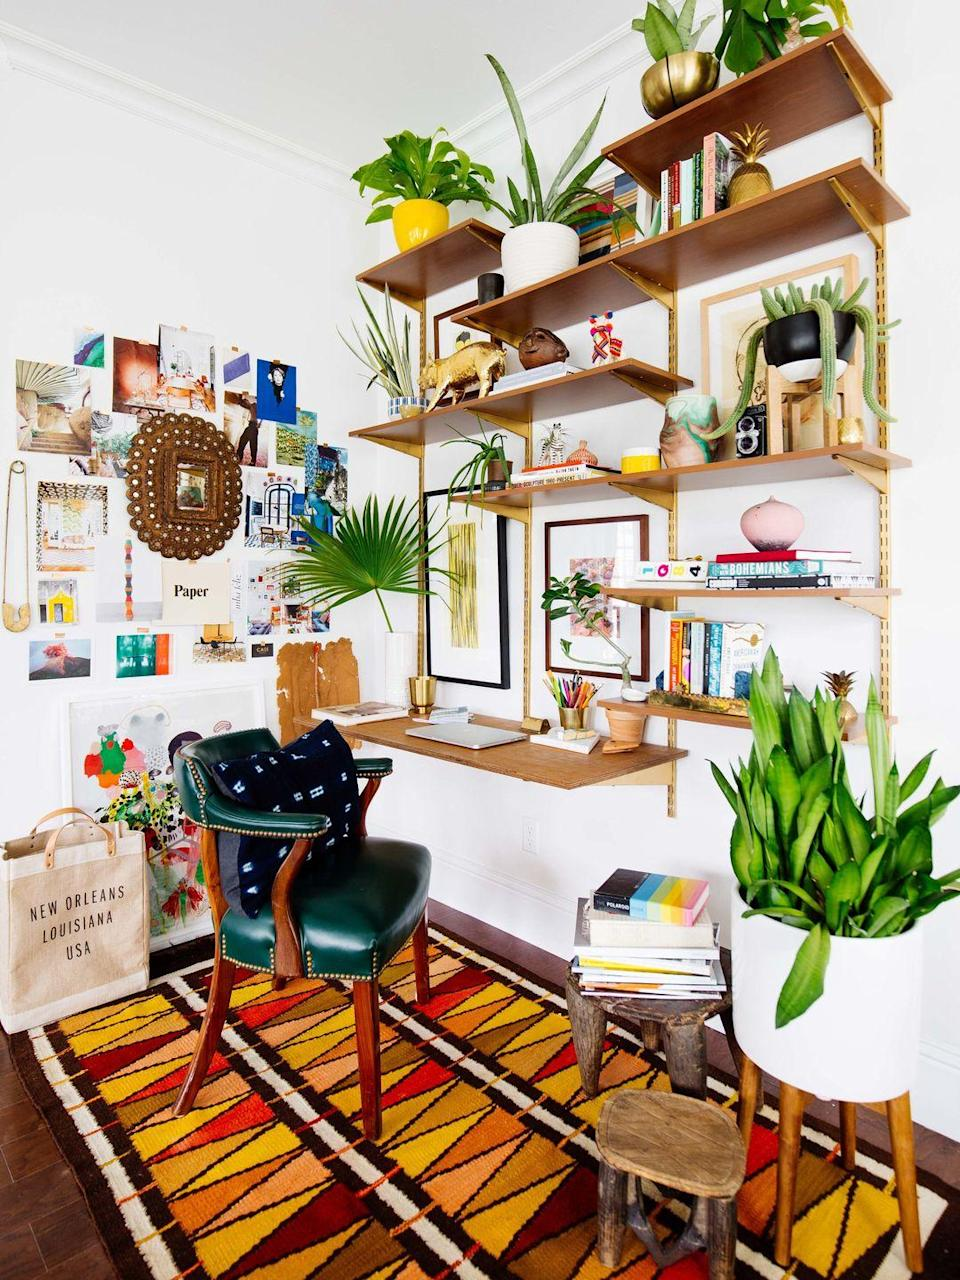 """<p>Embrace your inner free spirit and decorate your office with <a href=""""https://www.housebeautiful.com/design-inspiration/a23748087/what-is-bohemian-design-style/"""" rel=""""nofollow noopener"""" target=""""_blank"""" data-ylk=""""slk:anything that tells a story"""" class=""""link rapid-noclick-resp"""">anything that tells a story</a>, has sentimental value to you, or that you picked up on your travels. Add in a bold, patterned rug, color on color, and some plants. Consider yourself creative? More is more in that case. </p><p>See more at <a href=""""http://www.oldbrandnew.com/blog/2017/12/my-crazy-colorful-new-orleans-home-tour"""" rel=""""nofollow noopener"""" target=""""_blank"""" data-ylk=""""slk:Old Brand New"""" class=""""link rapid-noclick-resp"""">Old Brand New</a>. </p>"""